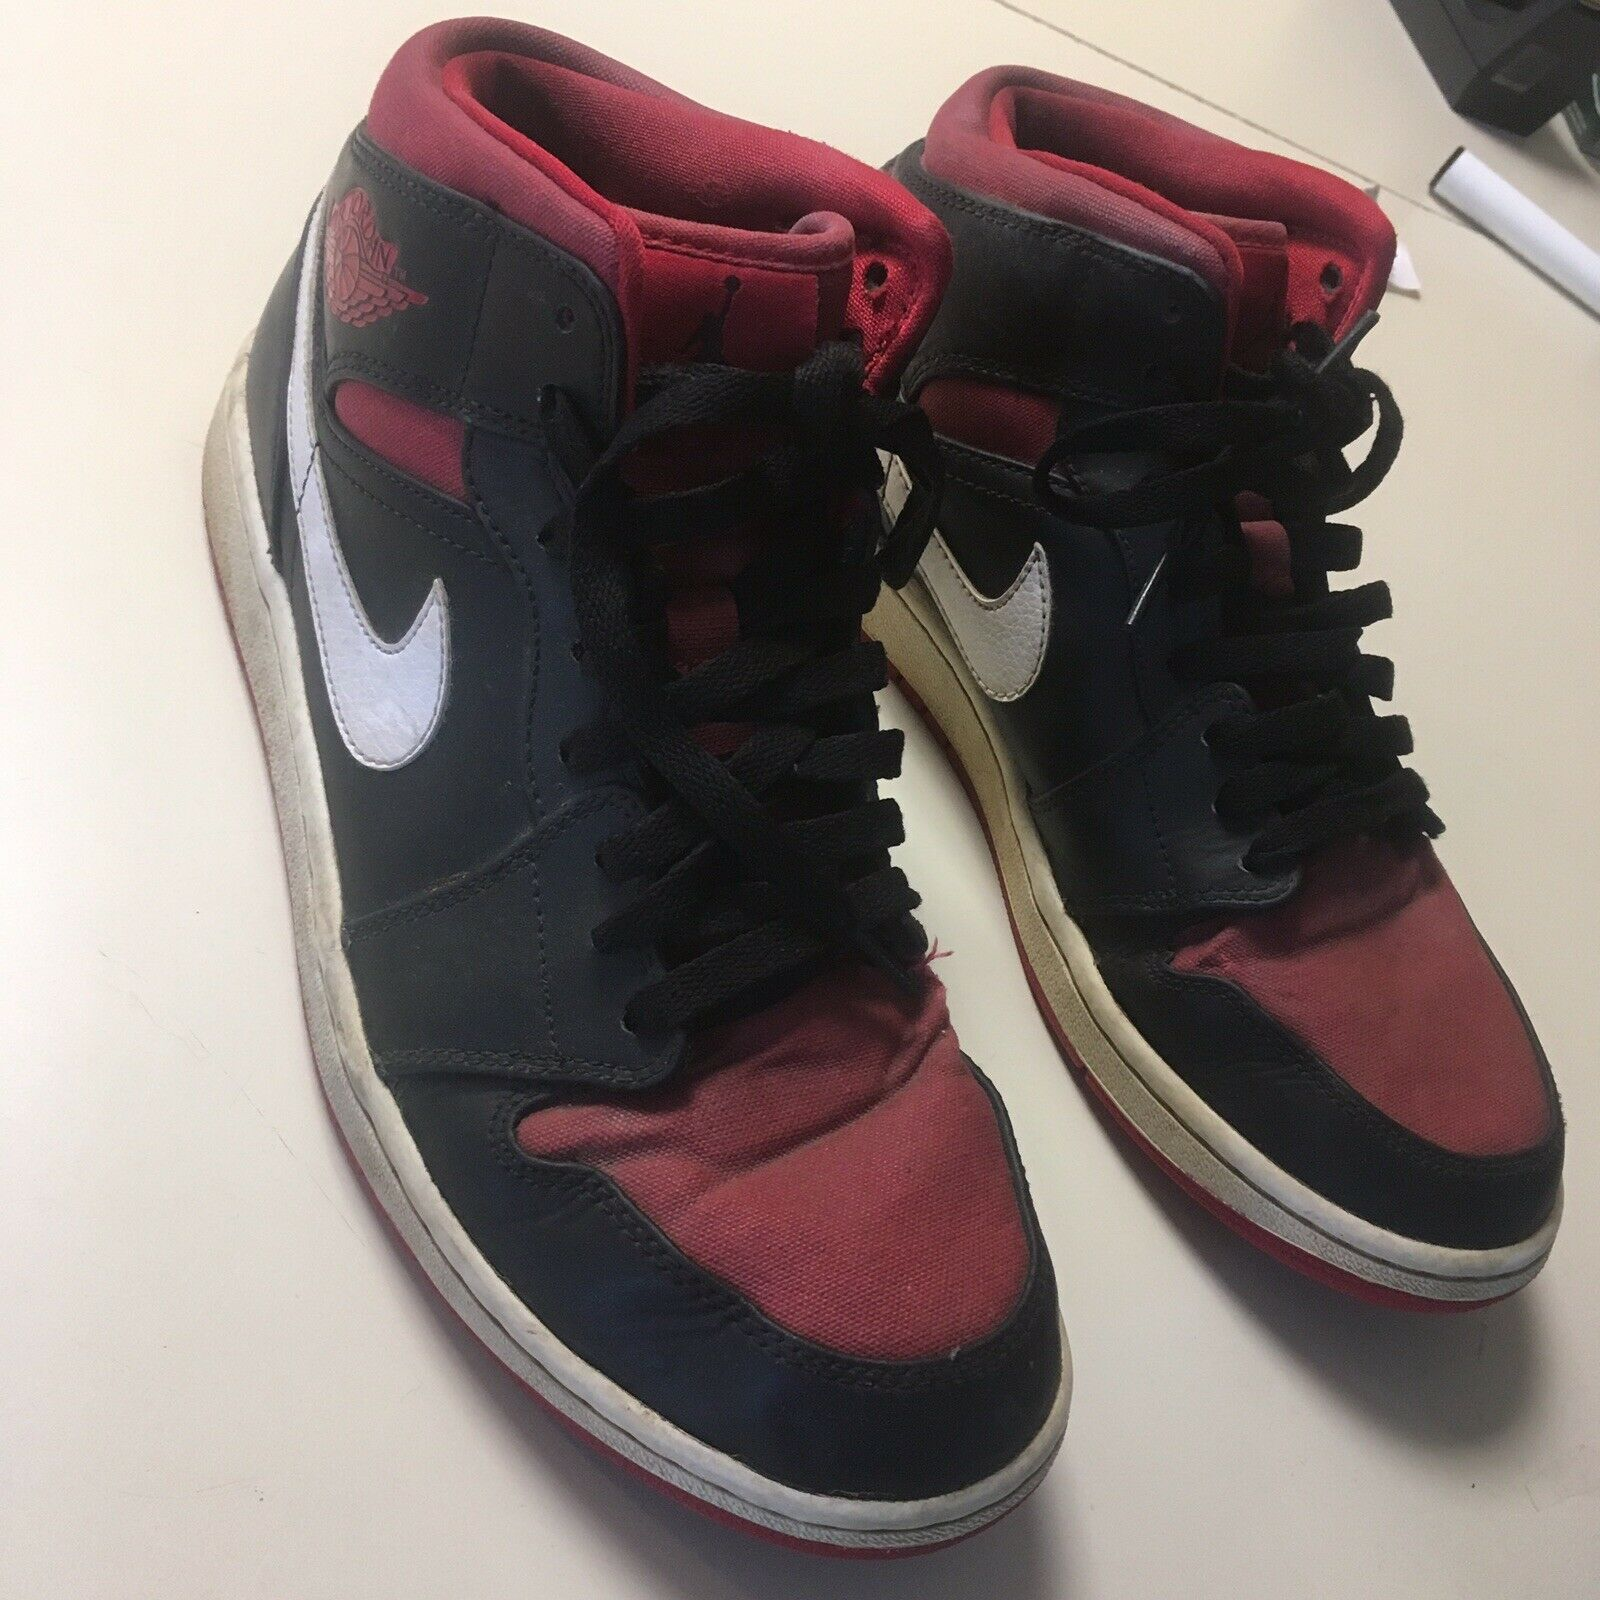 NIKE 2014 AIR JORDAN 1 RETRO MID BLACK  GYM RED  WHITE 554724-020 MENS Size 10